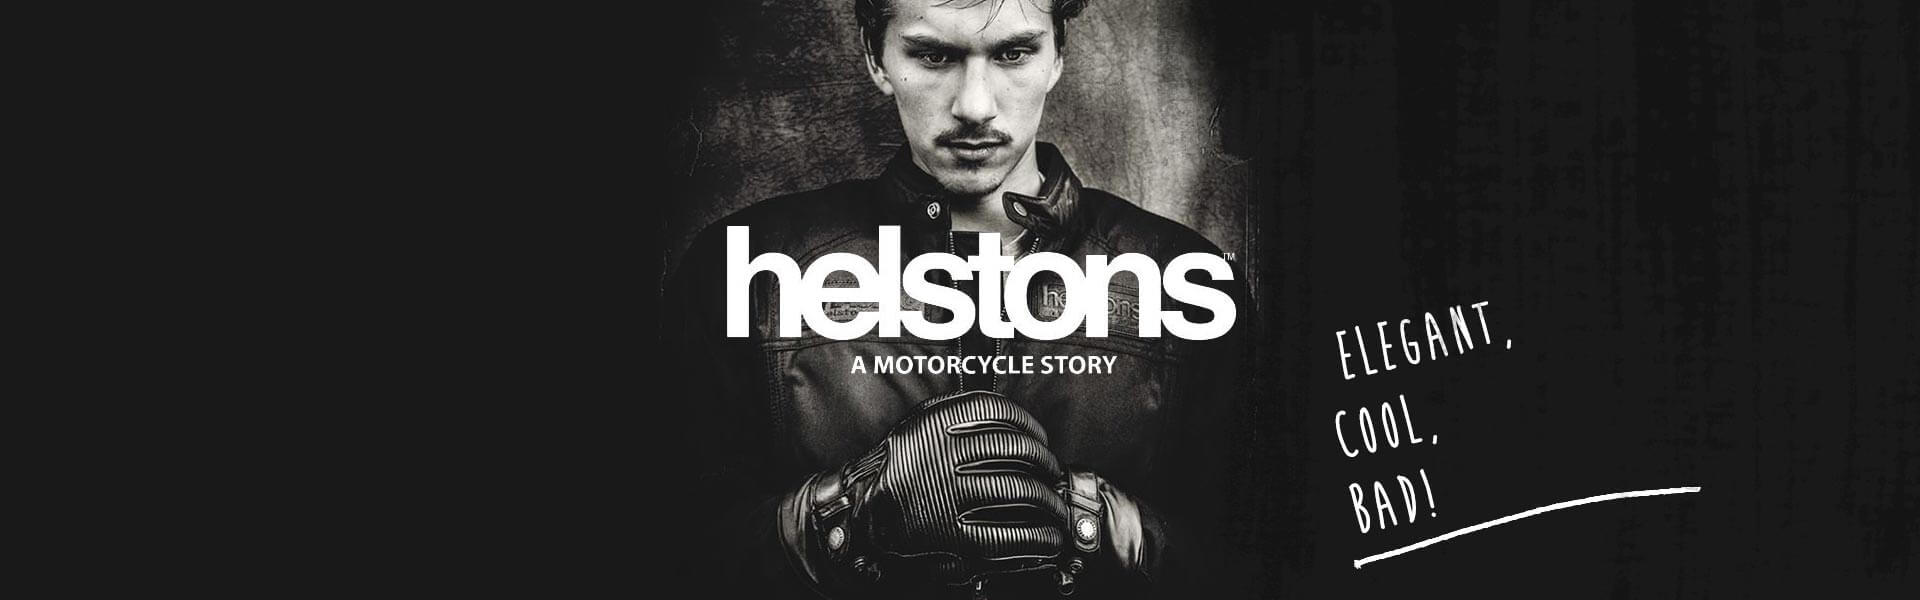 Helstons Motorcycle Jackets